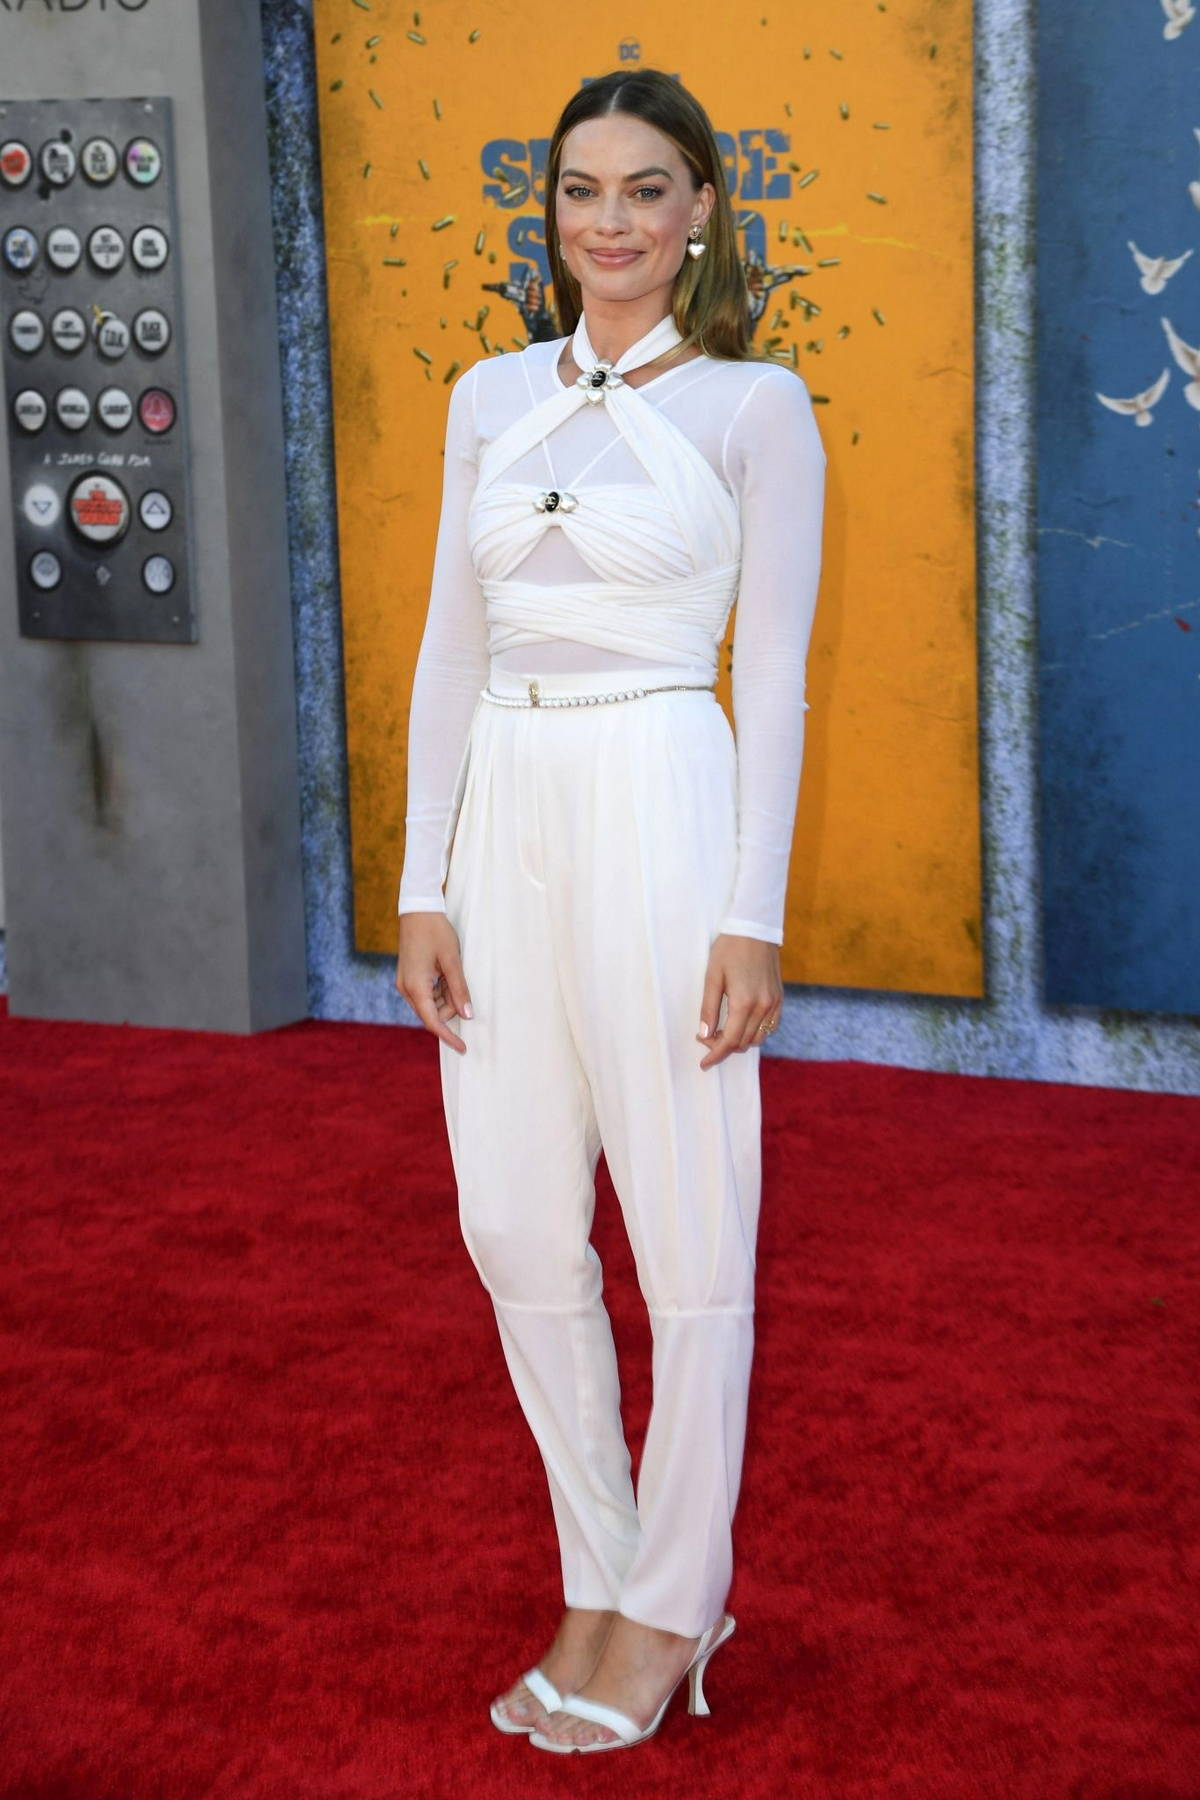 Margot Robbie attends the Premiere of 'The Suicide Squad' at Regency Village Theatre in Los Angeles